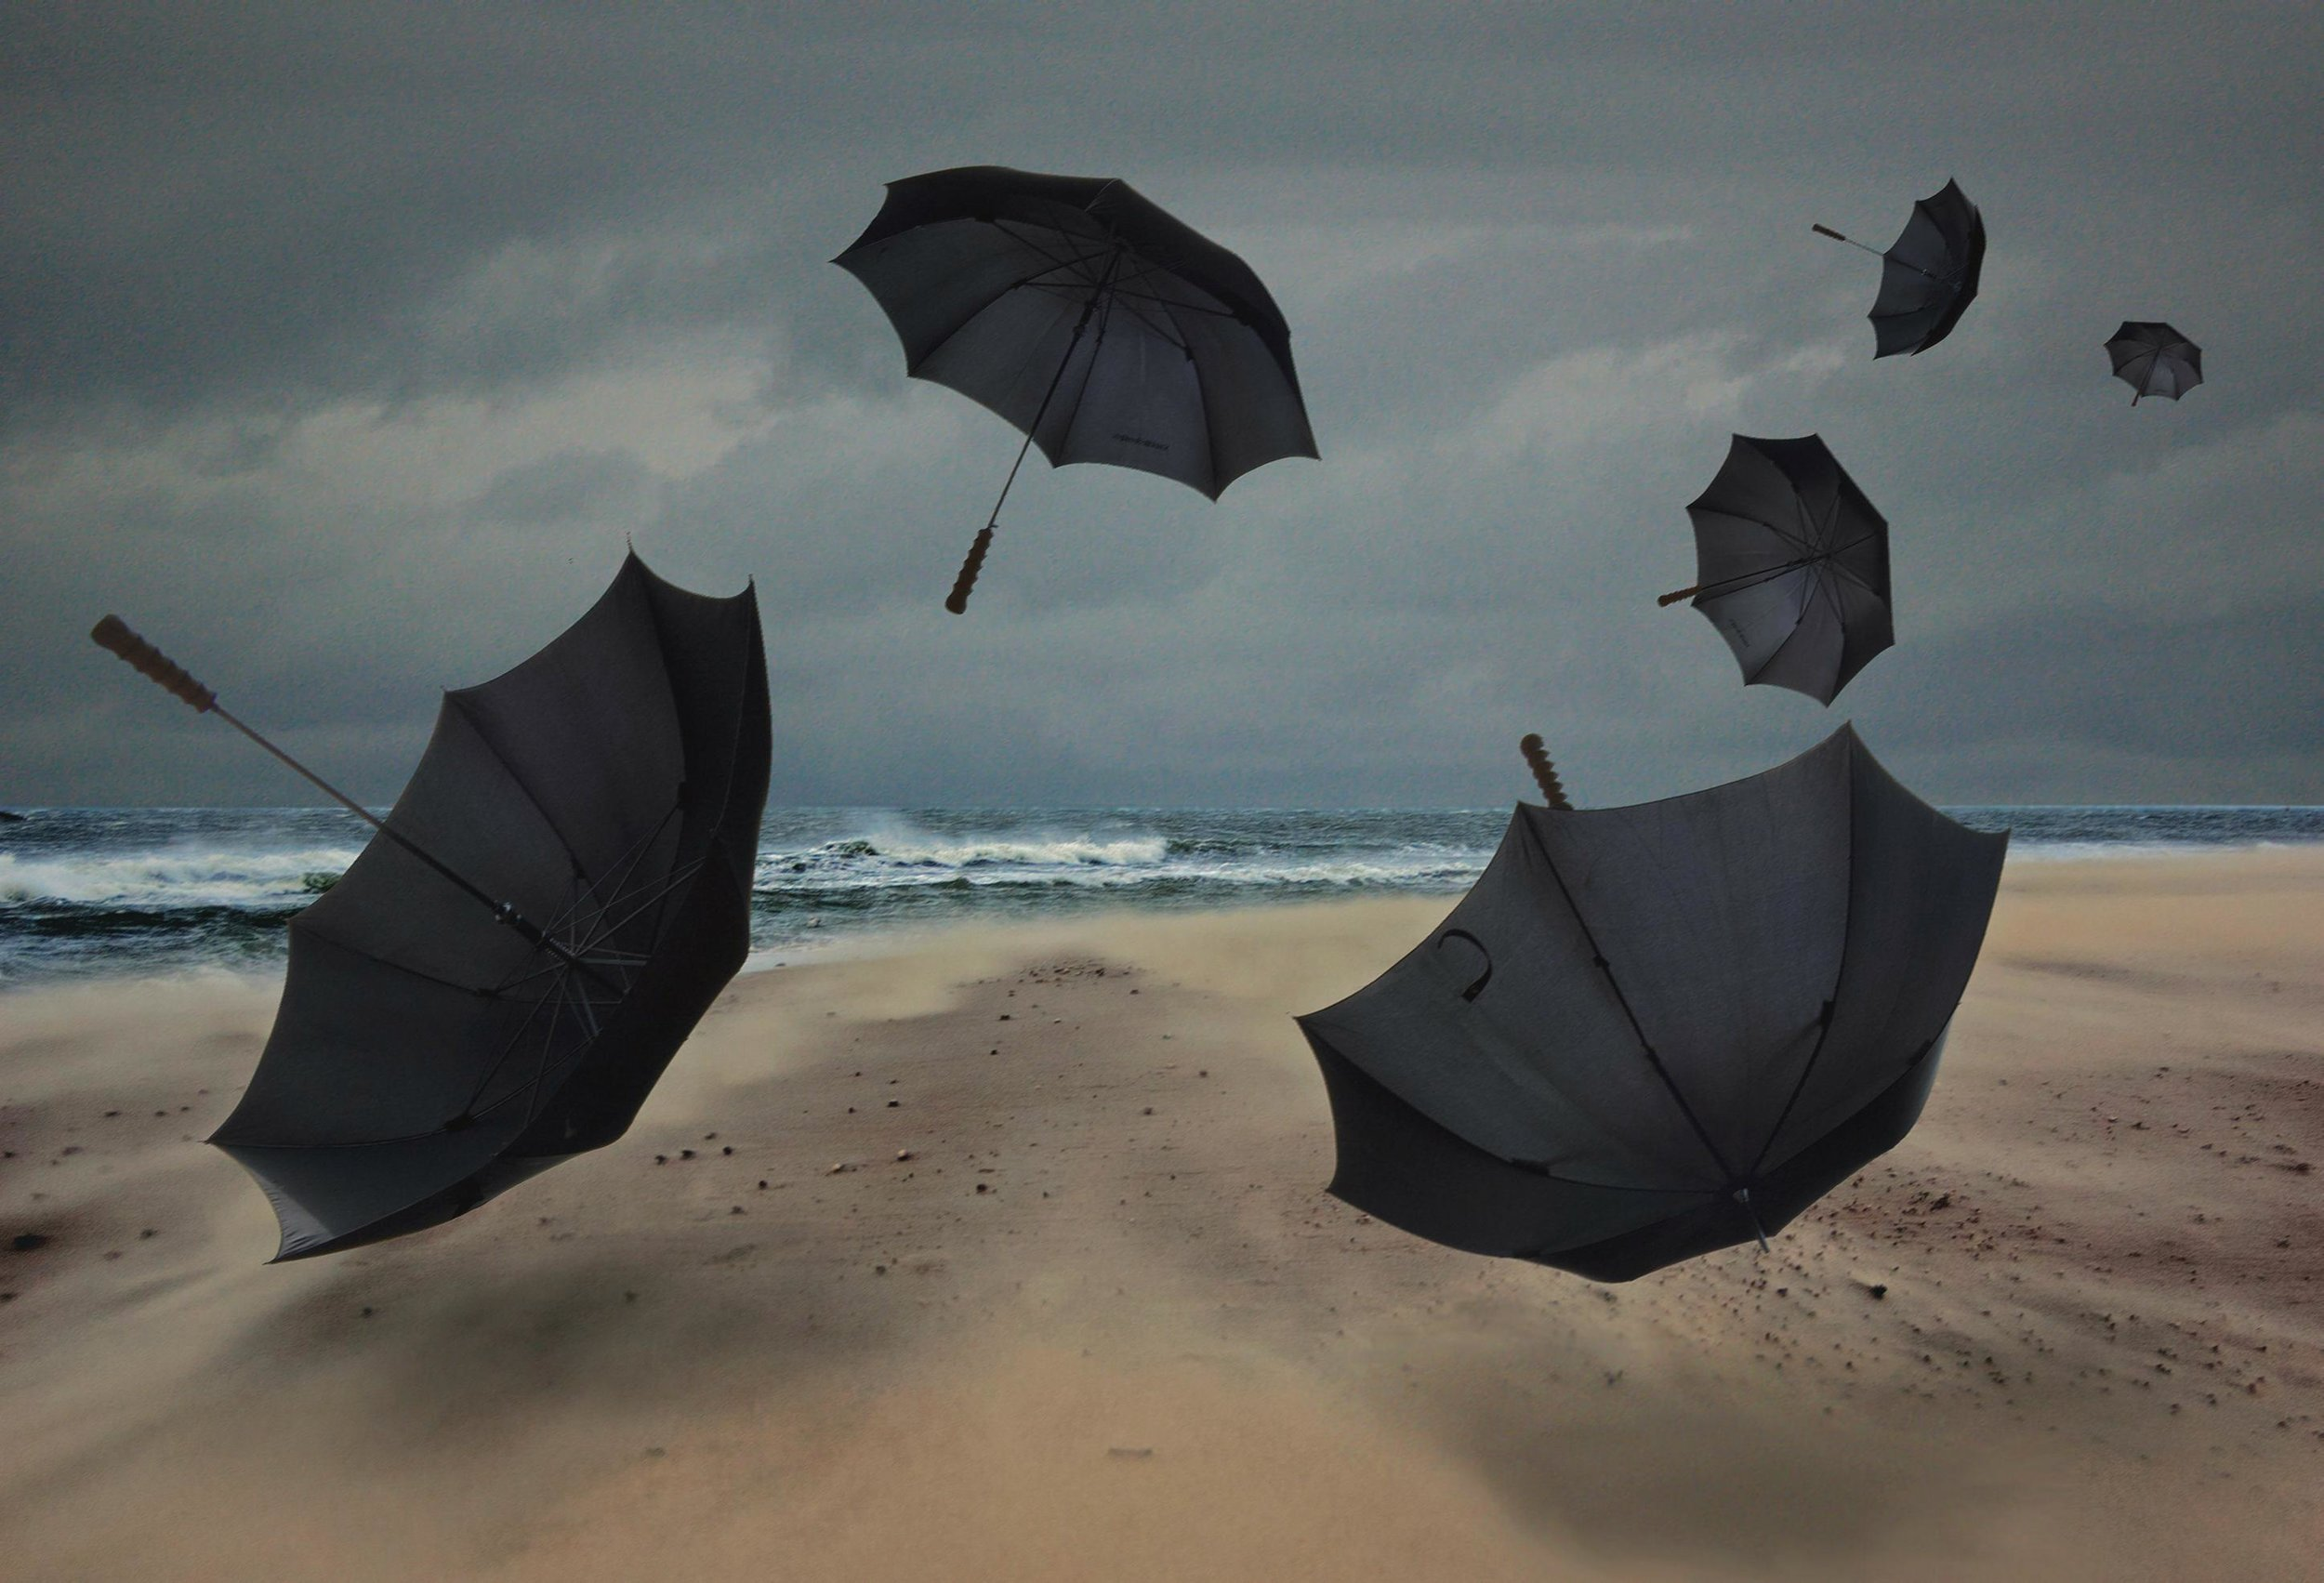 umbrellas in wind.jpg